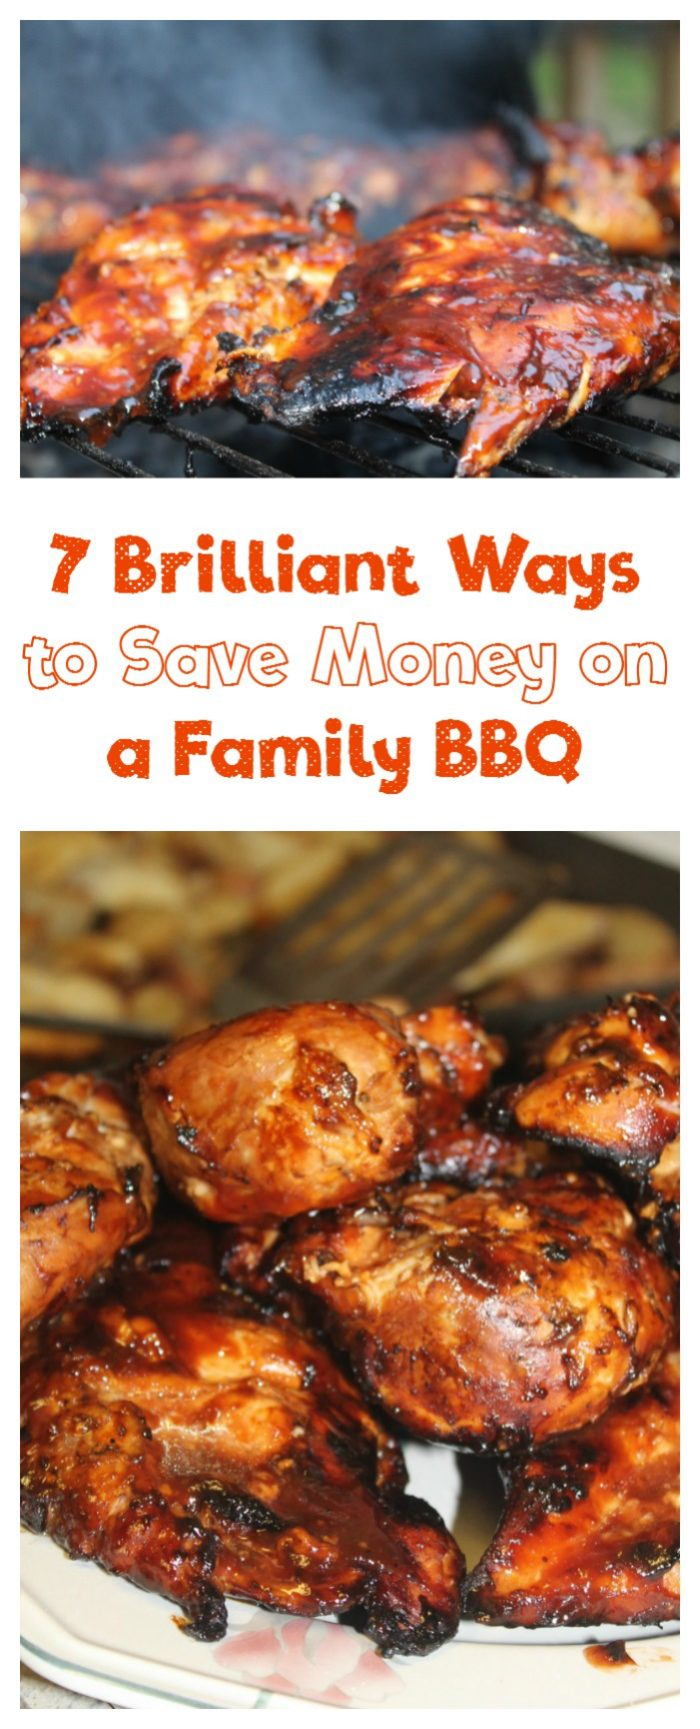 7 Brilliant Ways to Trim a Little Fat Off Your Family BBQ Budget